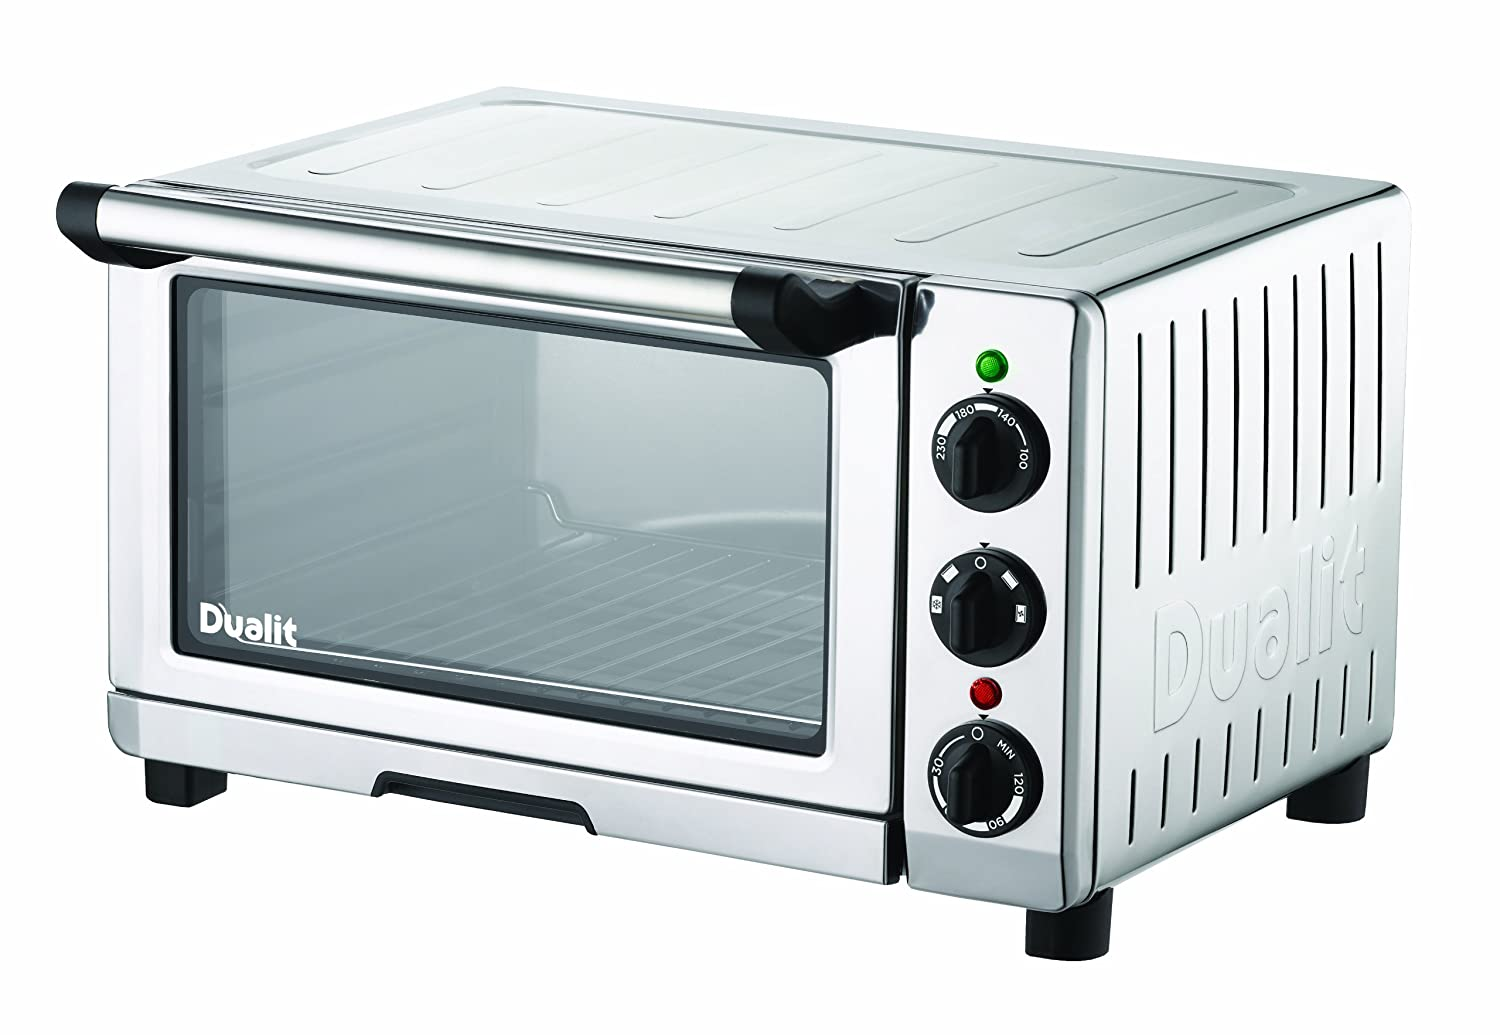 Amazon.com: Dualit Professional Mini Oven: Toaster Ovens: Kitchen ...